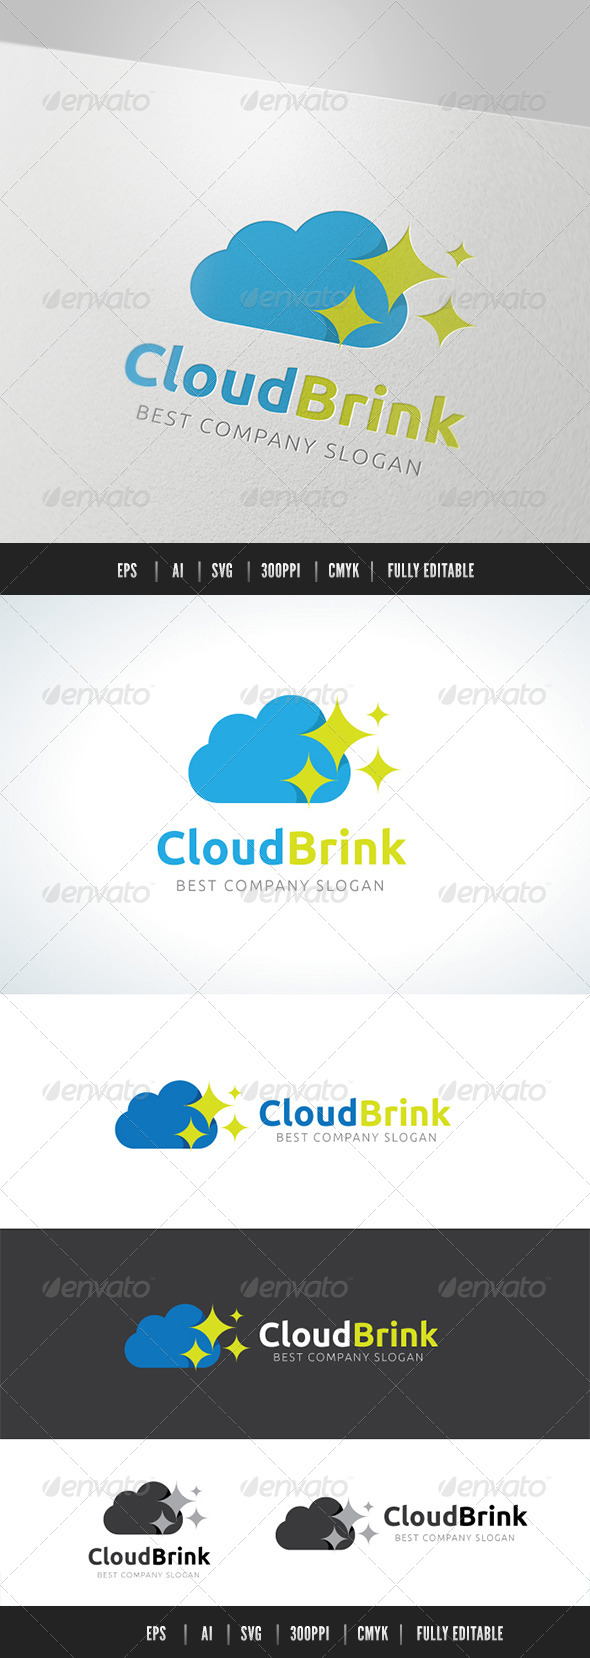 GraphicRiver CloudBrink 8492341